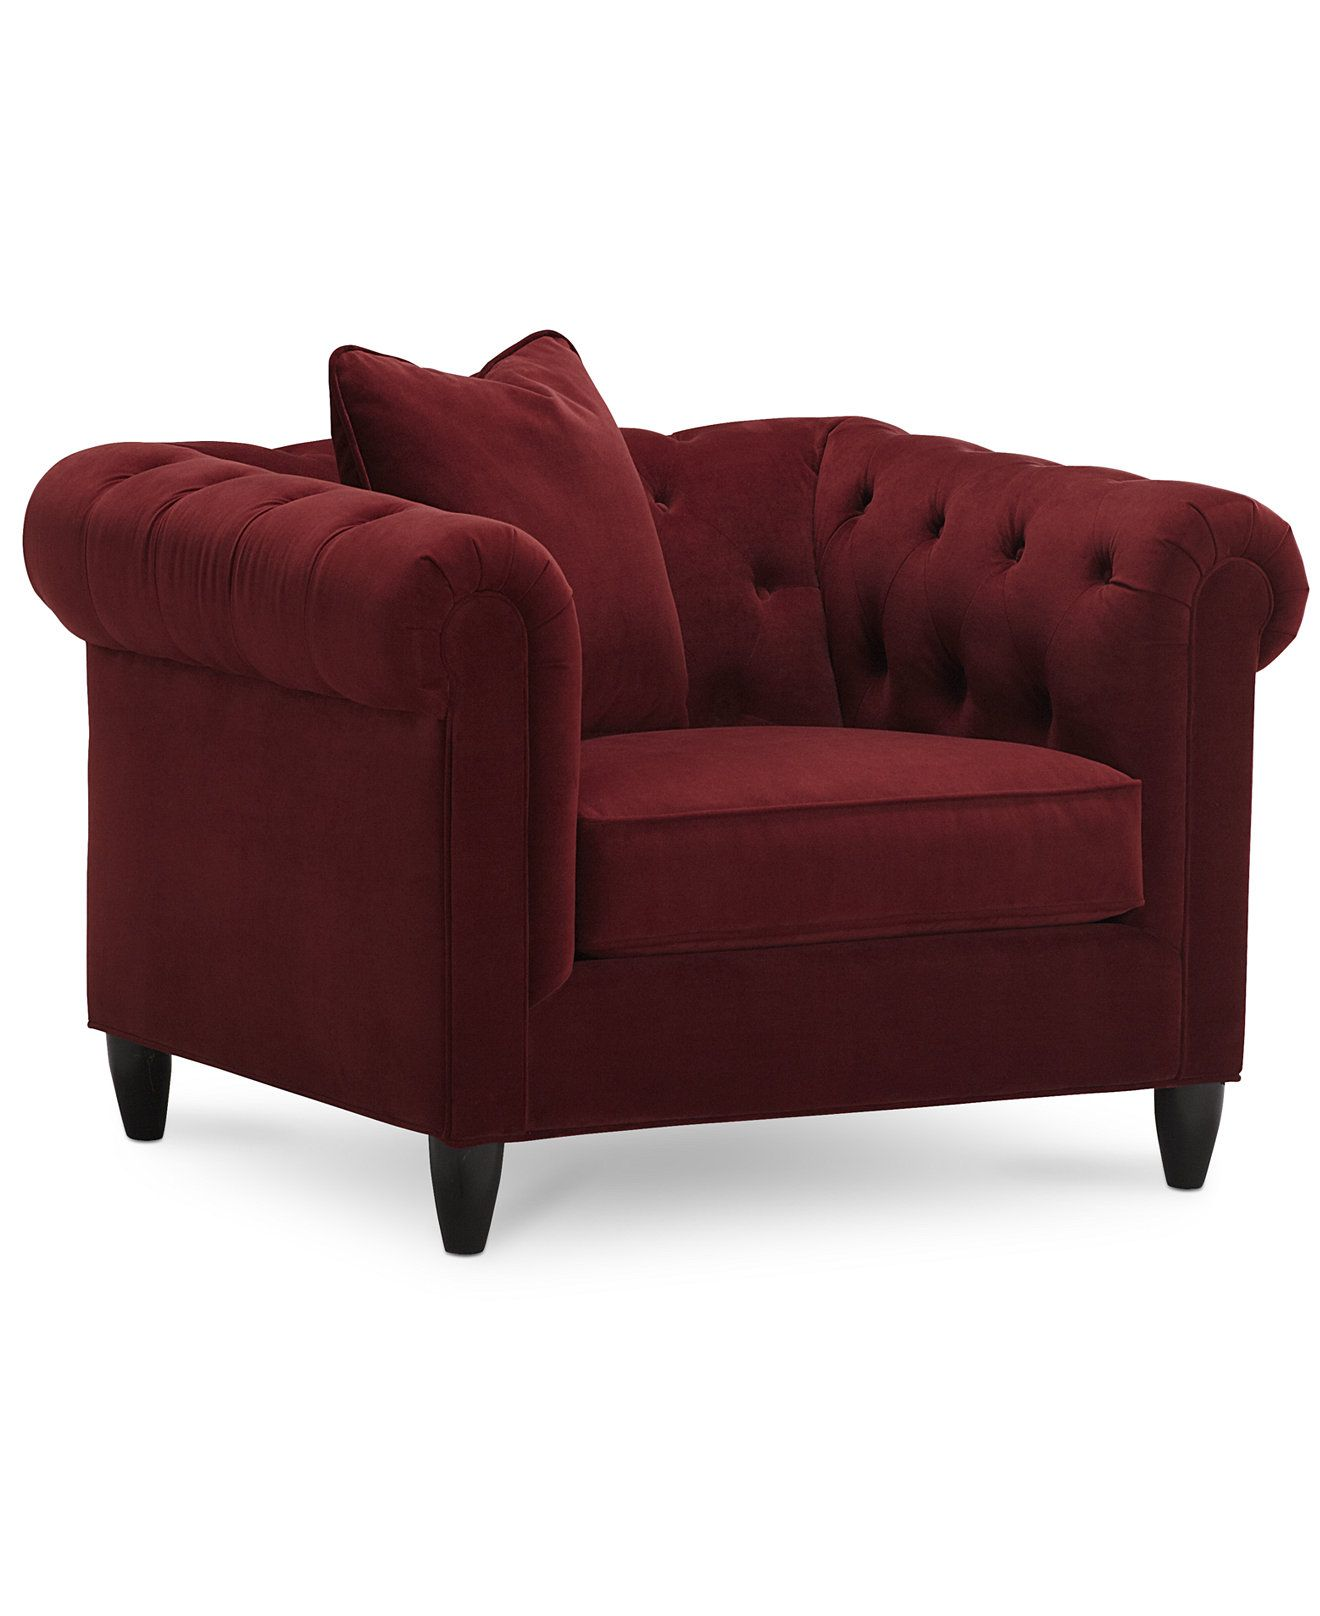 Rayna Polyester Living Room Chair - Furniture Closeouts ...